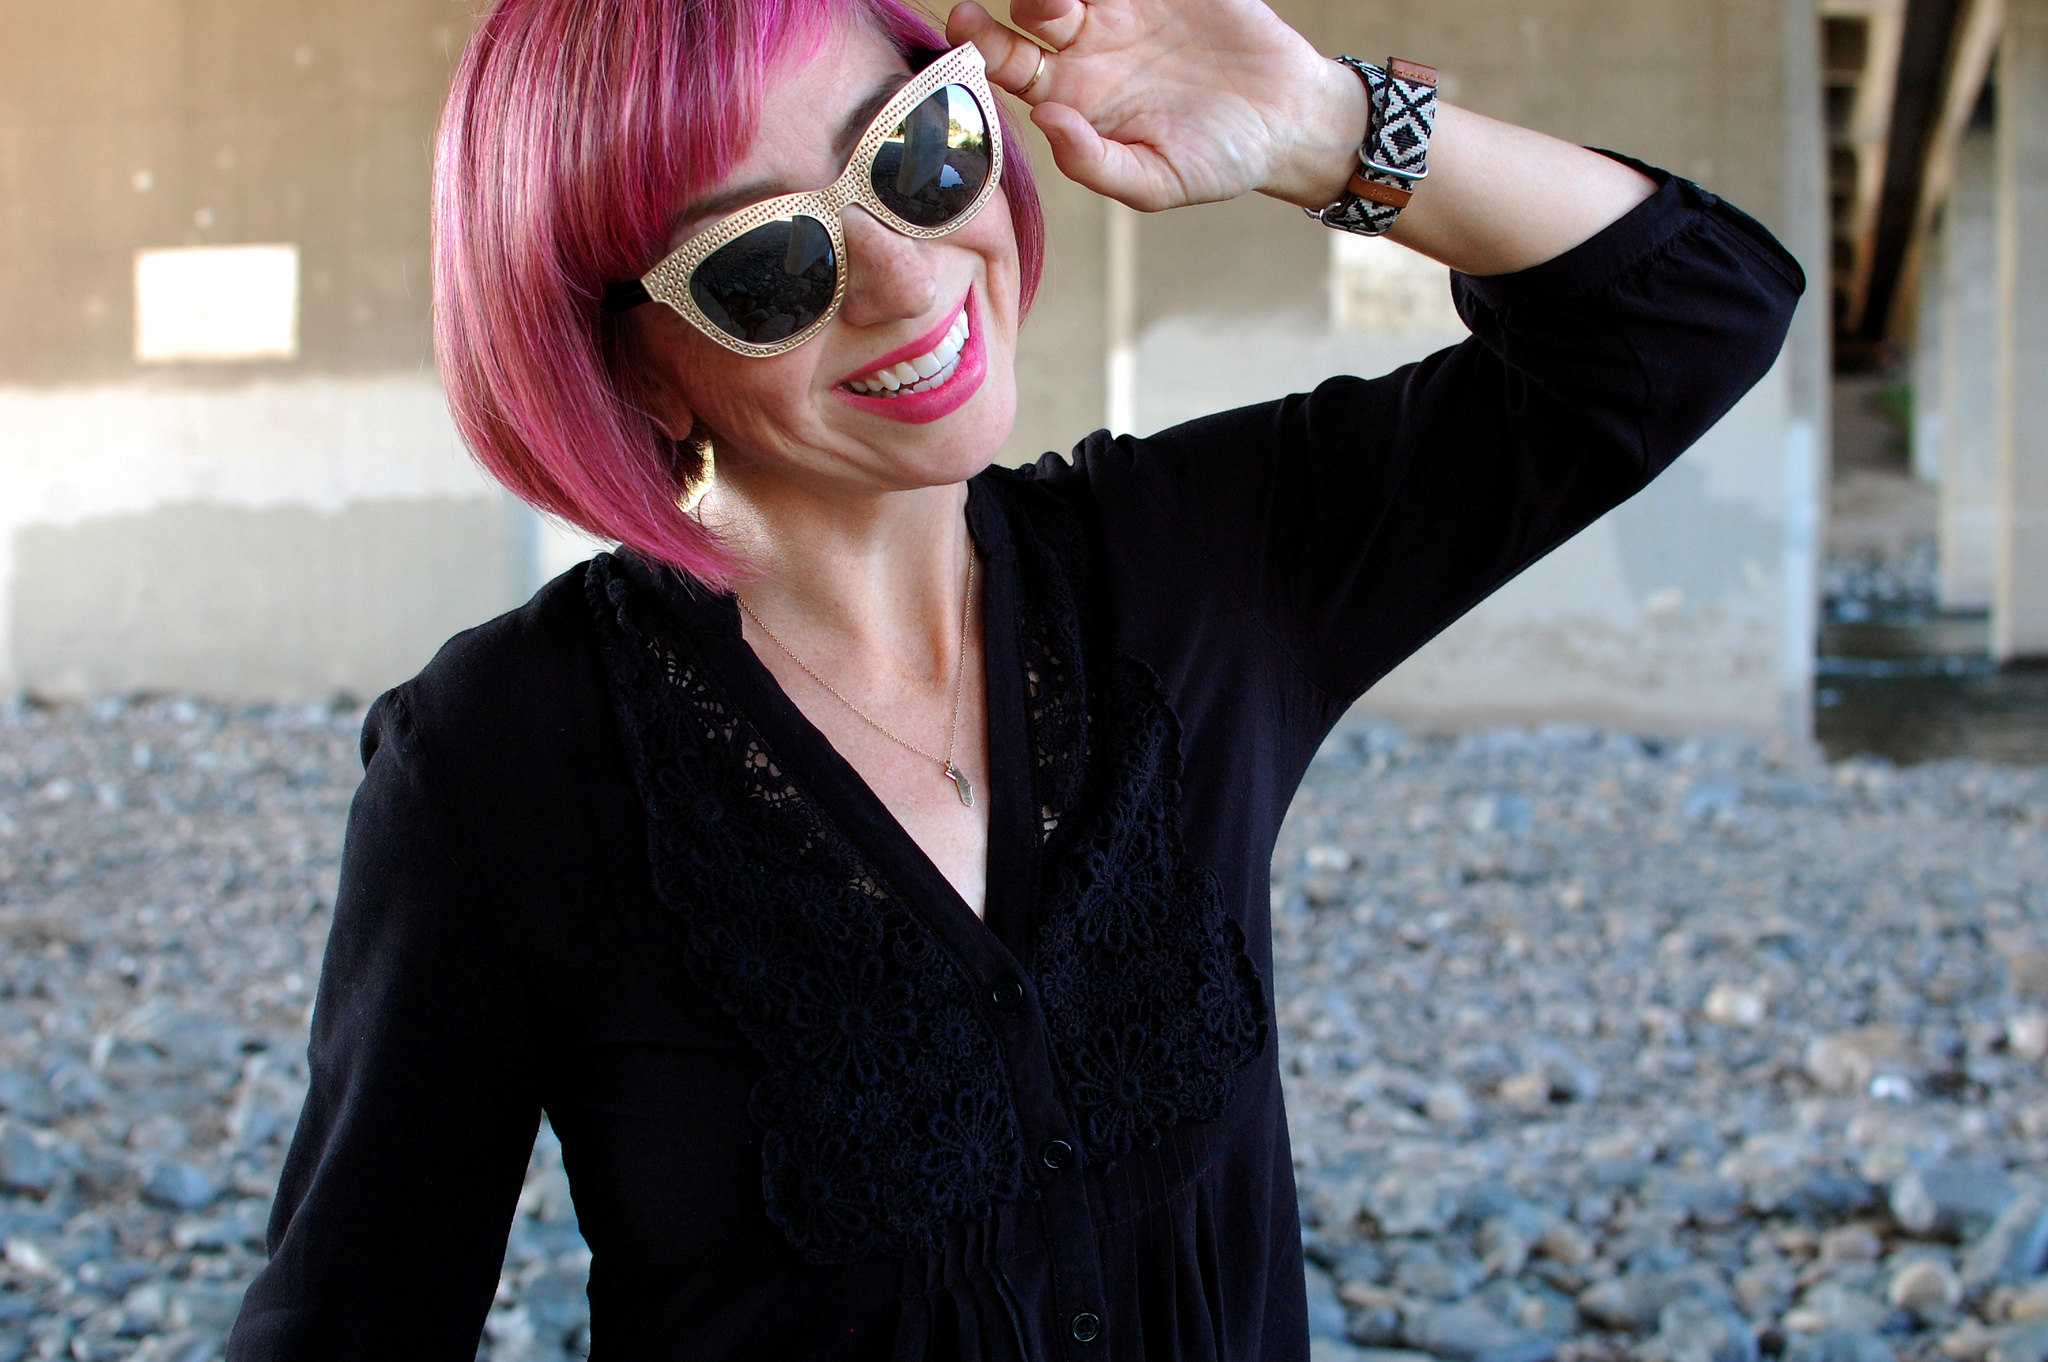 pink bob bangs hair daily outfit blog ootd whatiwore2day